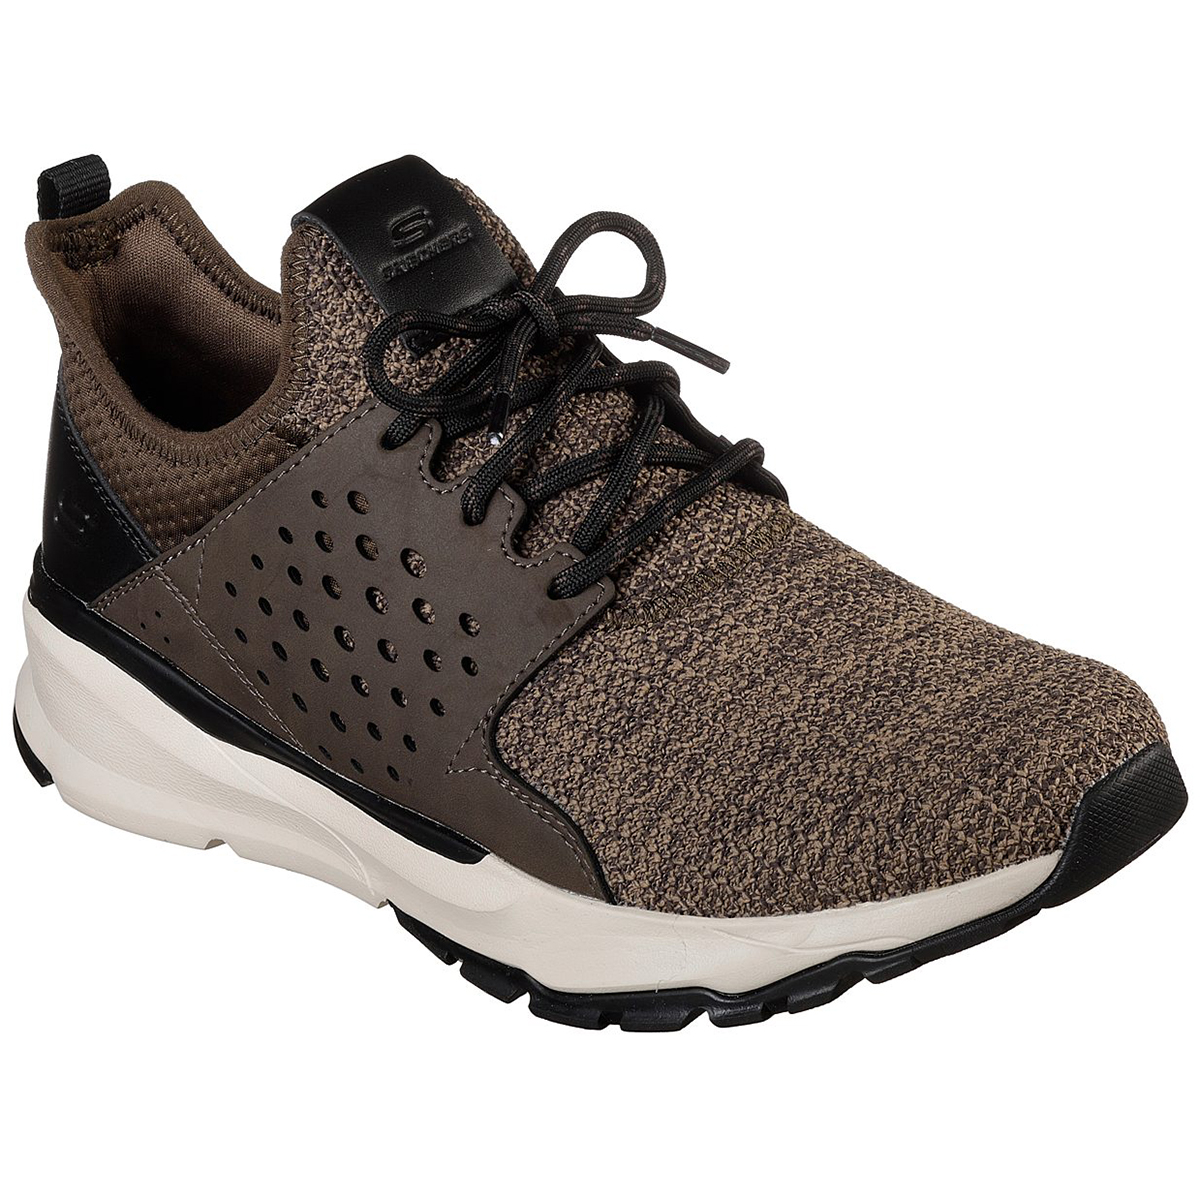 Skechers Guys' Relven Velton Sneakers - Brown, 12